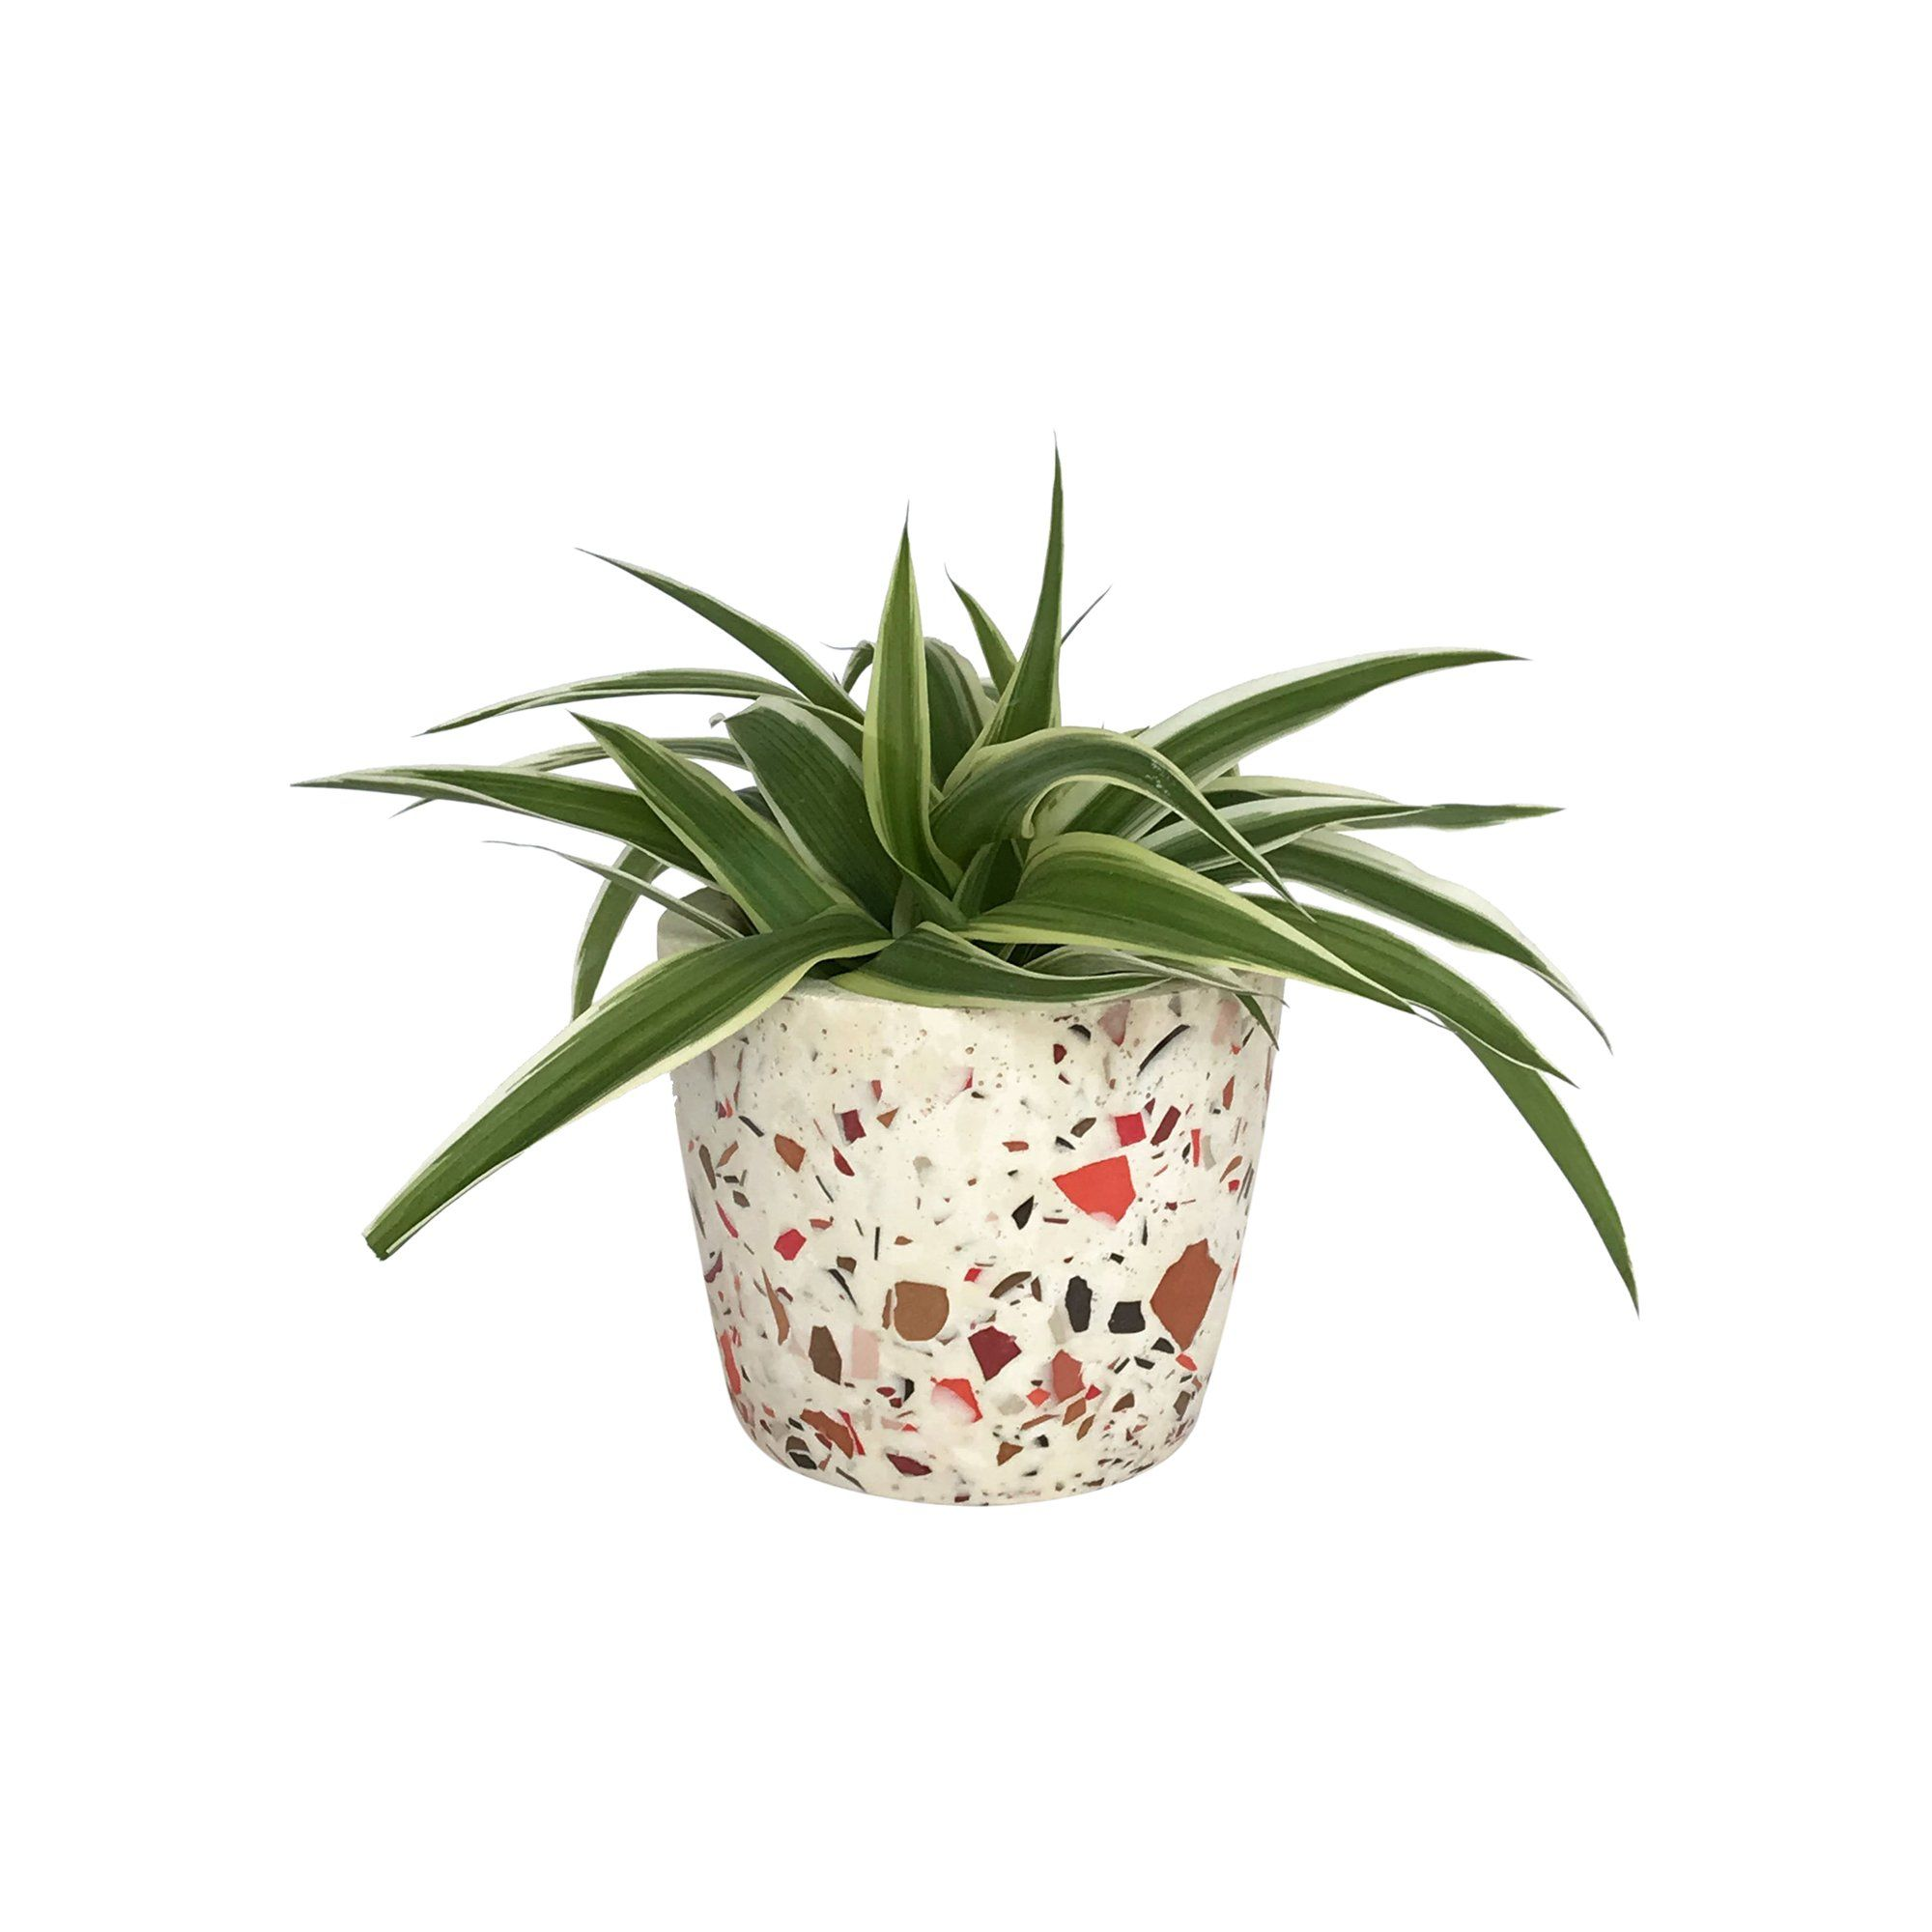 Add a splash of color to your inside or outside spaces with this Mini Cone Terrazzo Planter. Waterproof Materials: Concrete Size: 2.75